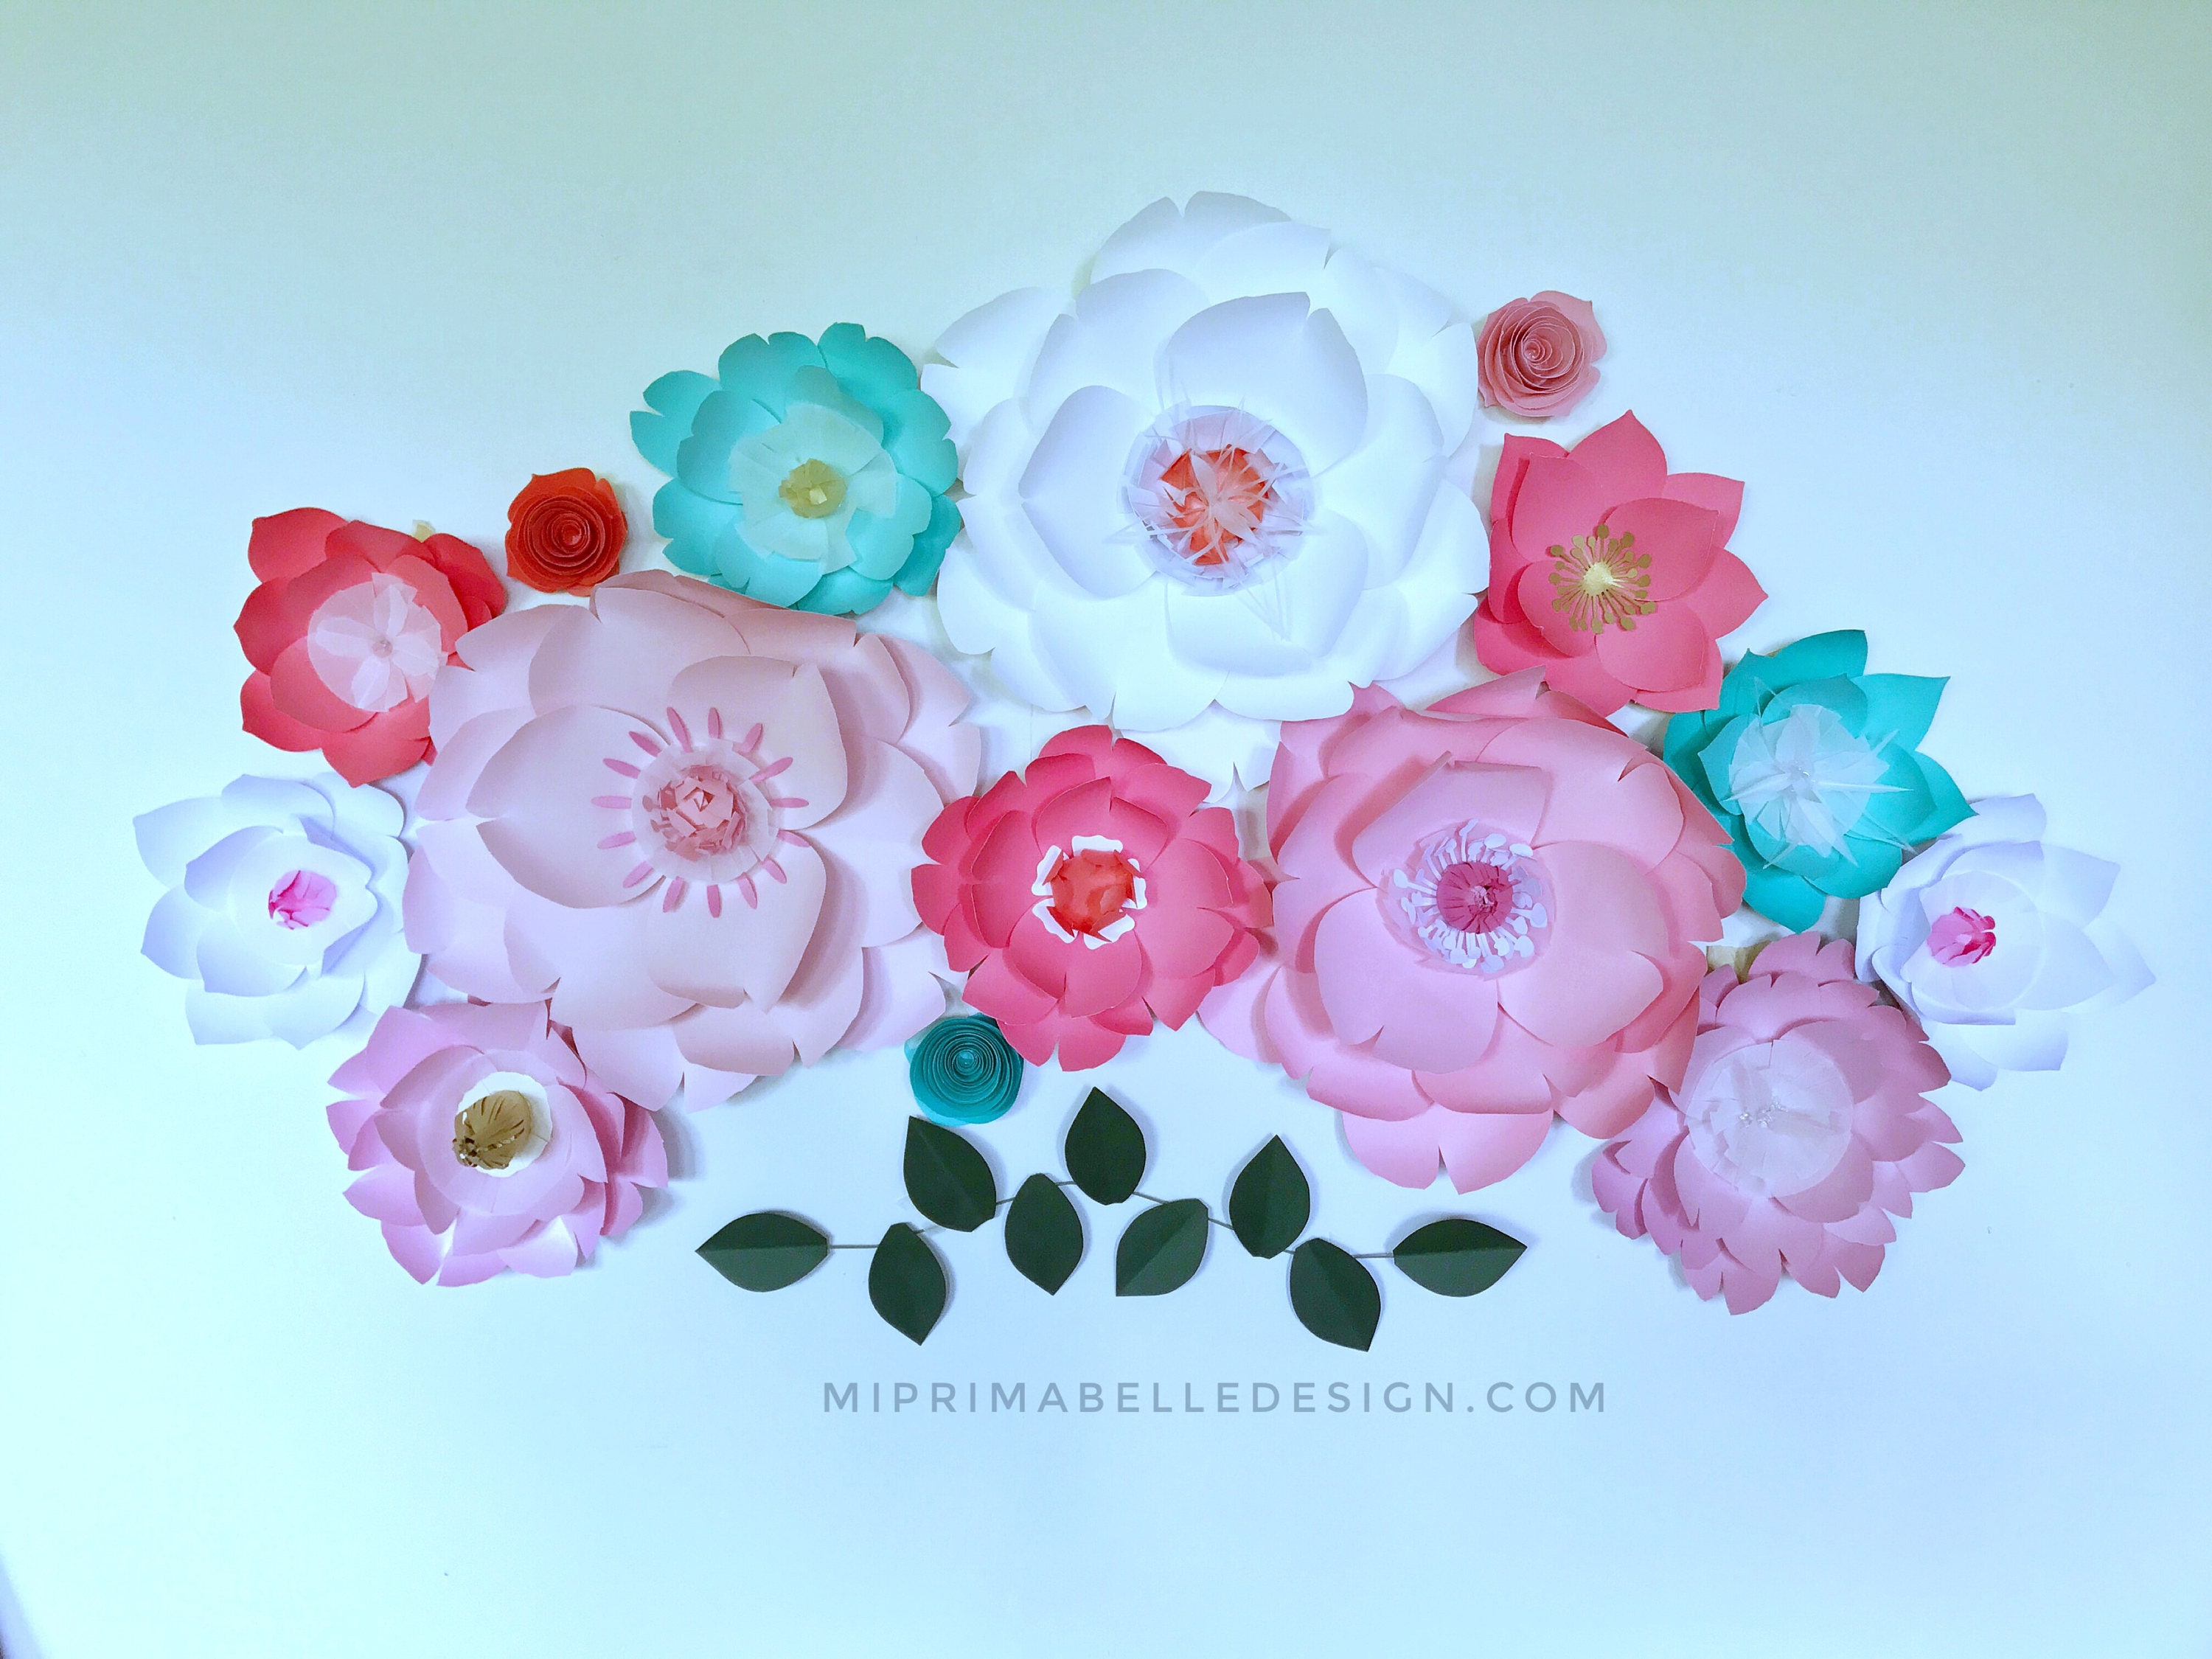 Turquoise Nursery Wall Decor Backdrop Wedding Coral Paper Flowers